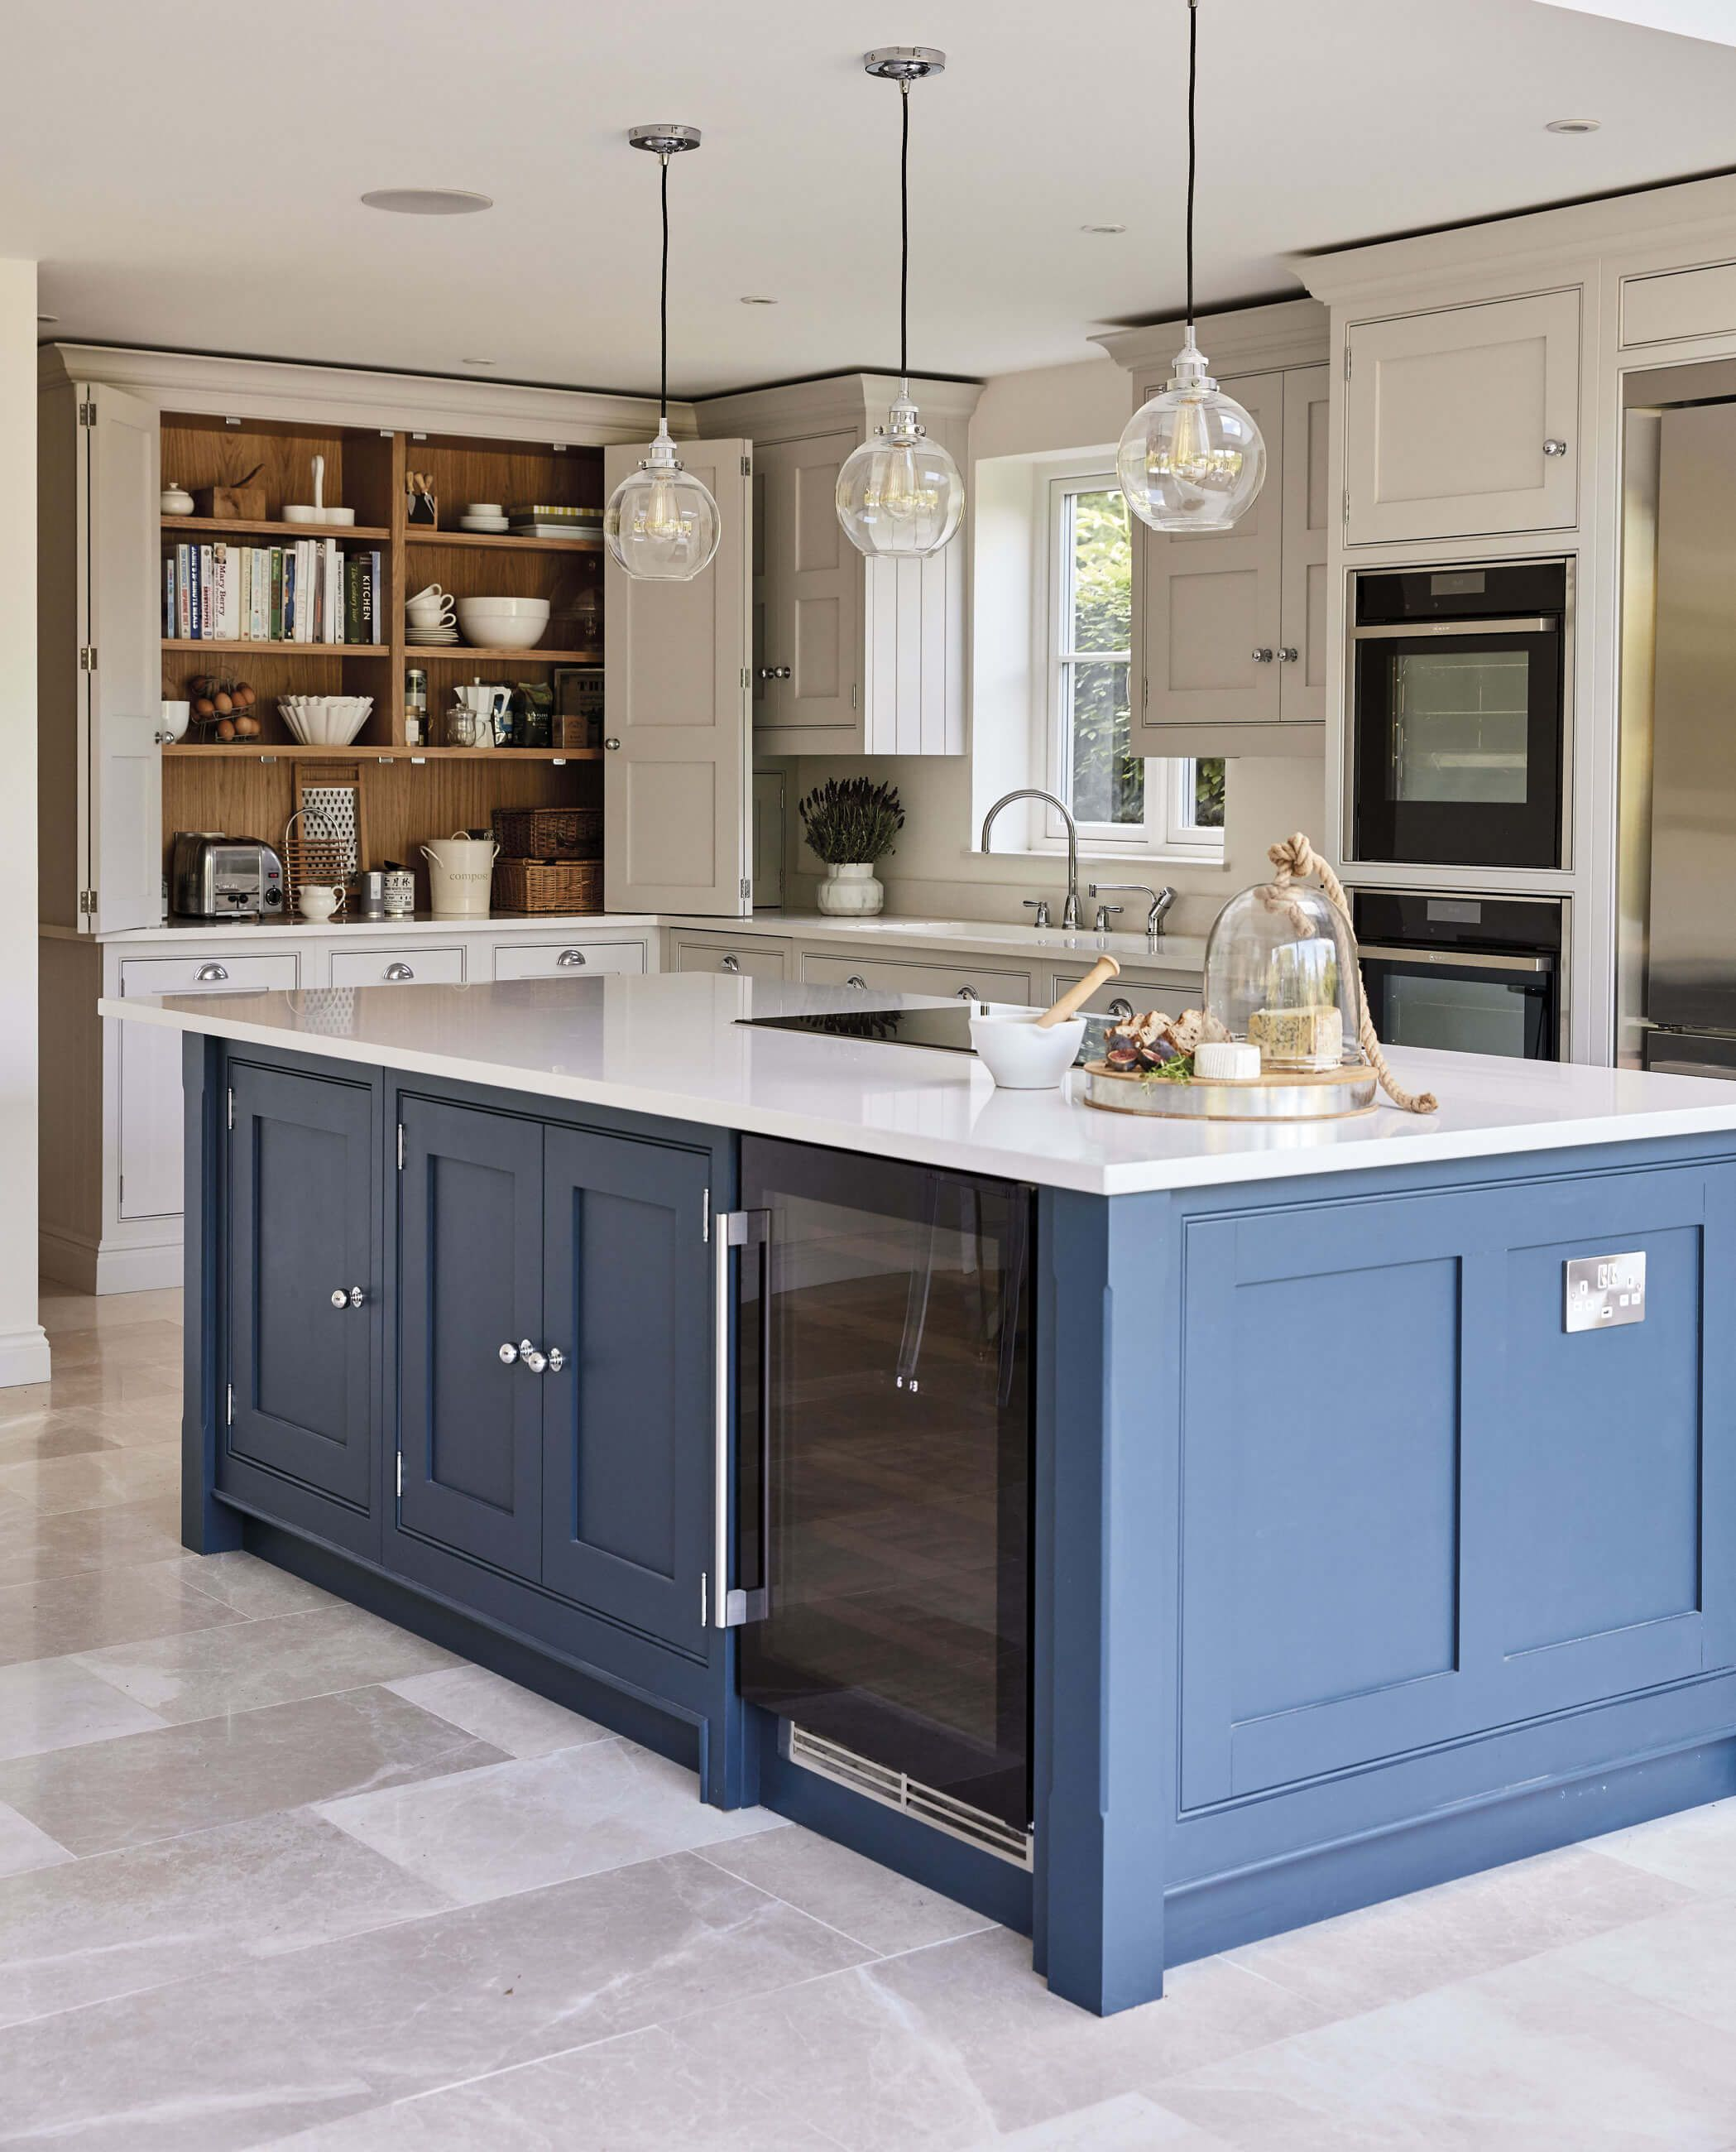 blue shaker kitchen | luxury kitchens - tom howley blue shaker